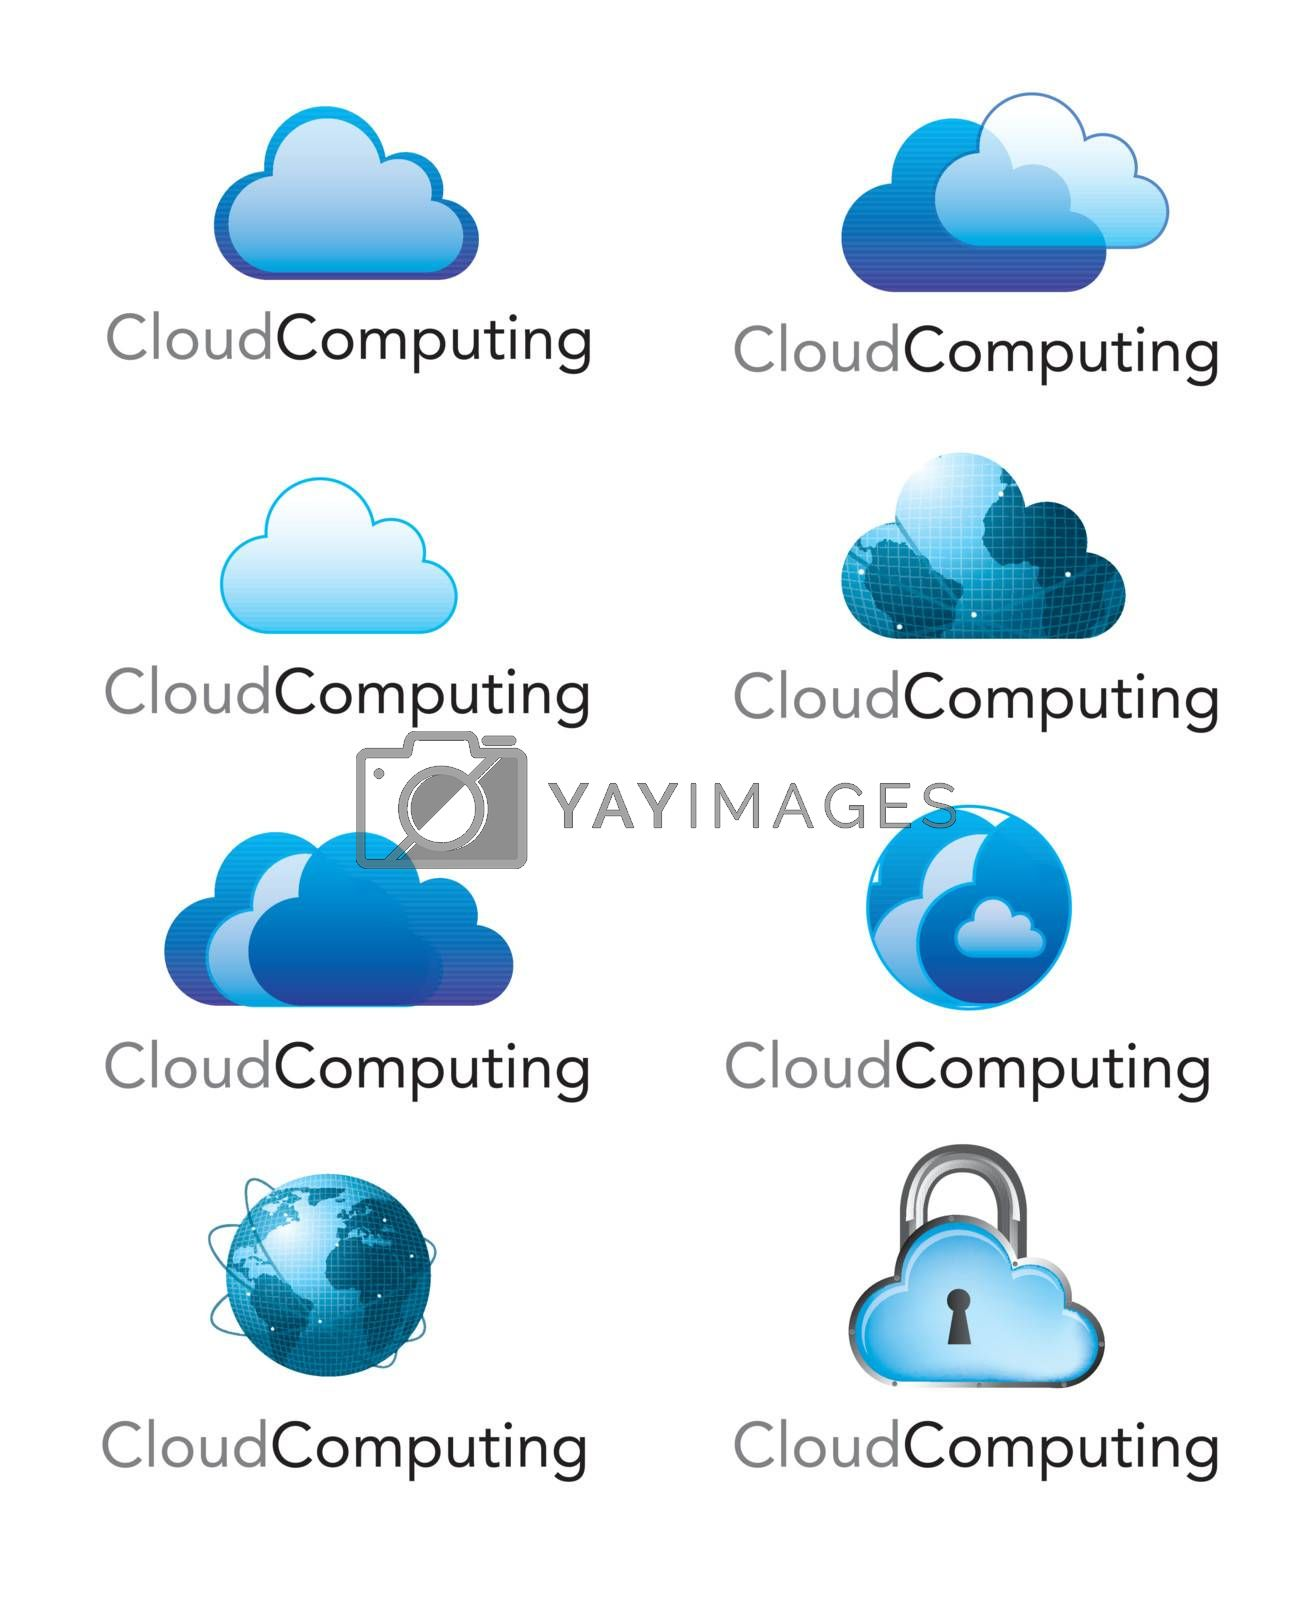 Clouds computing by yupiramos